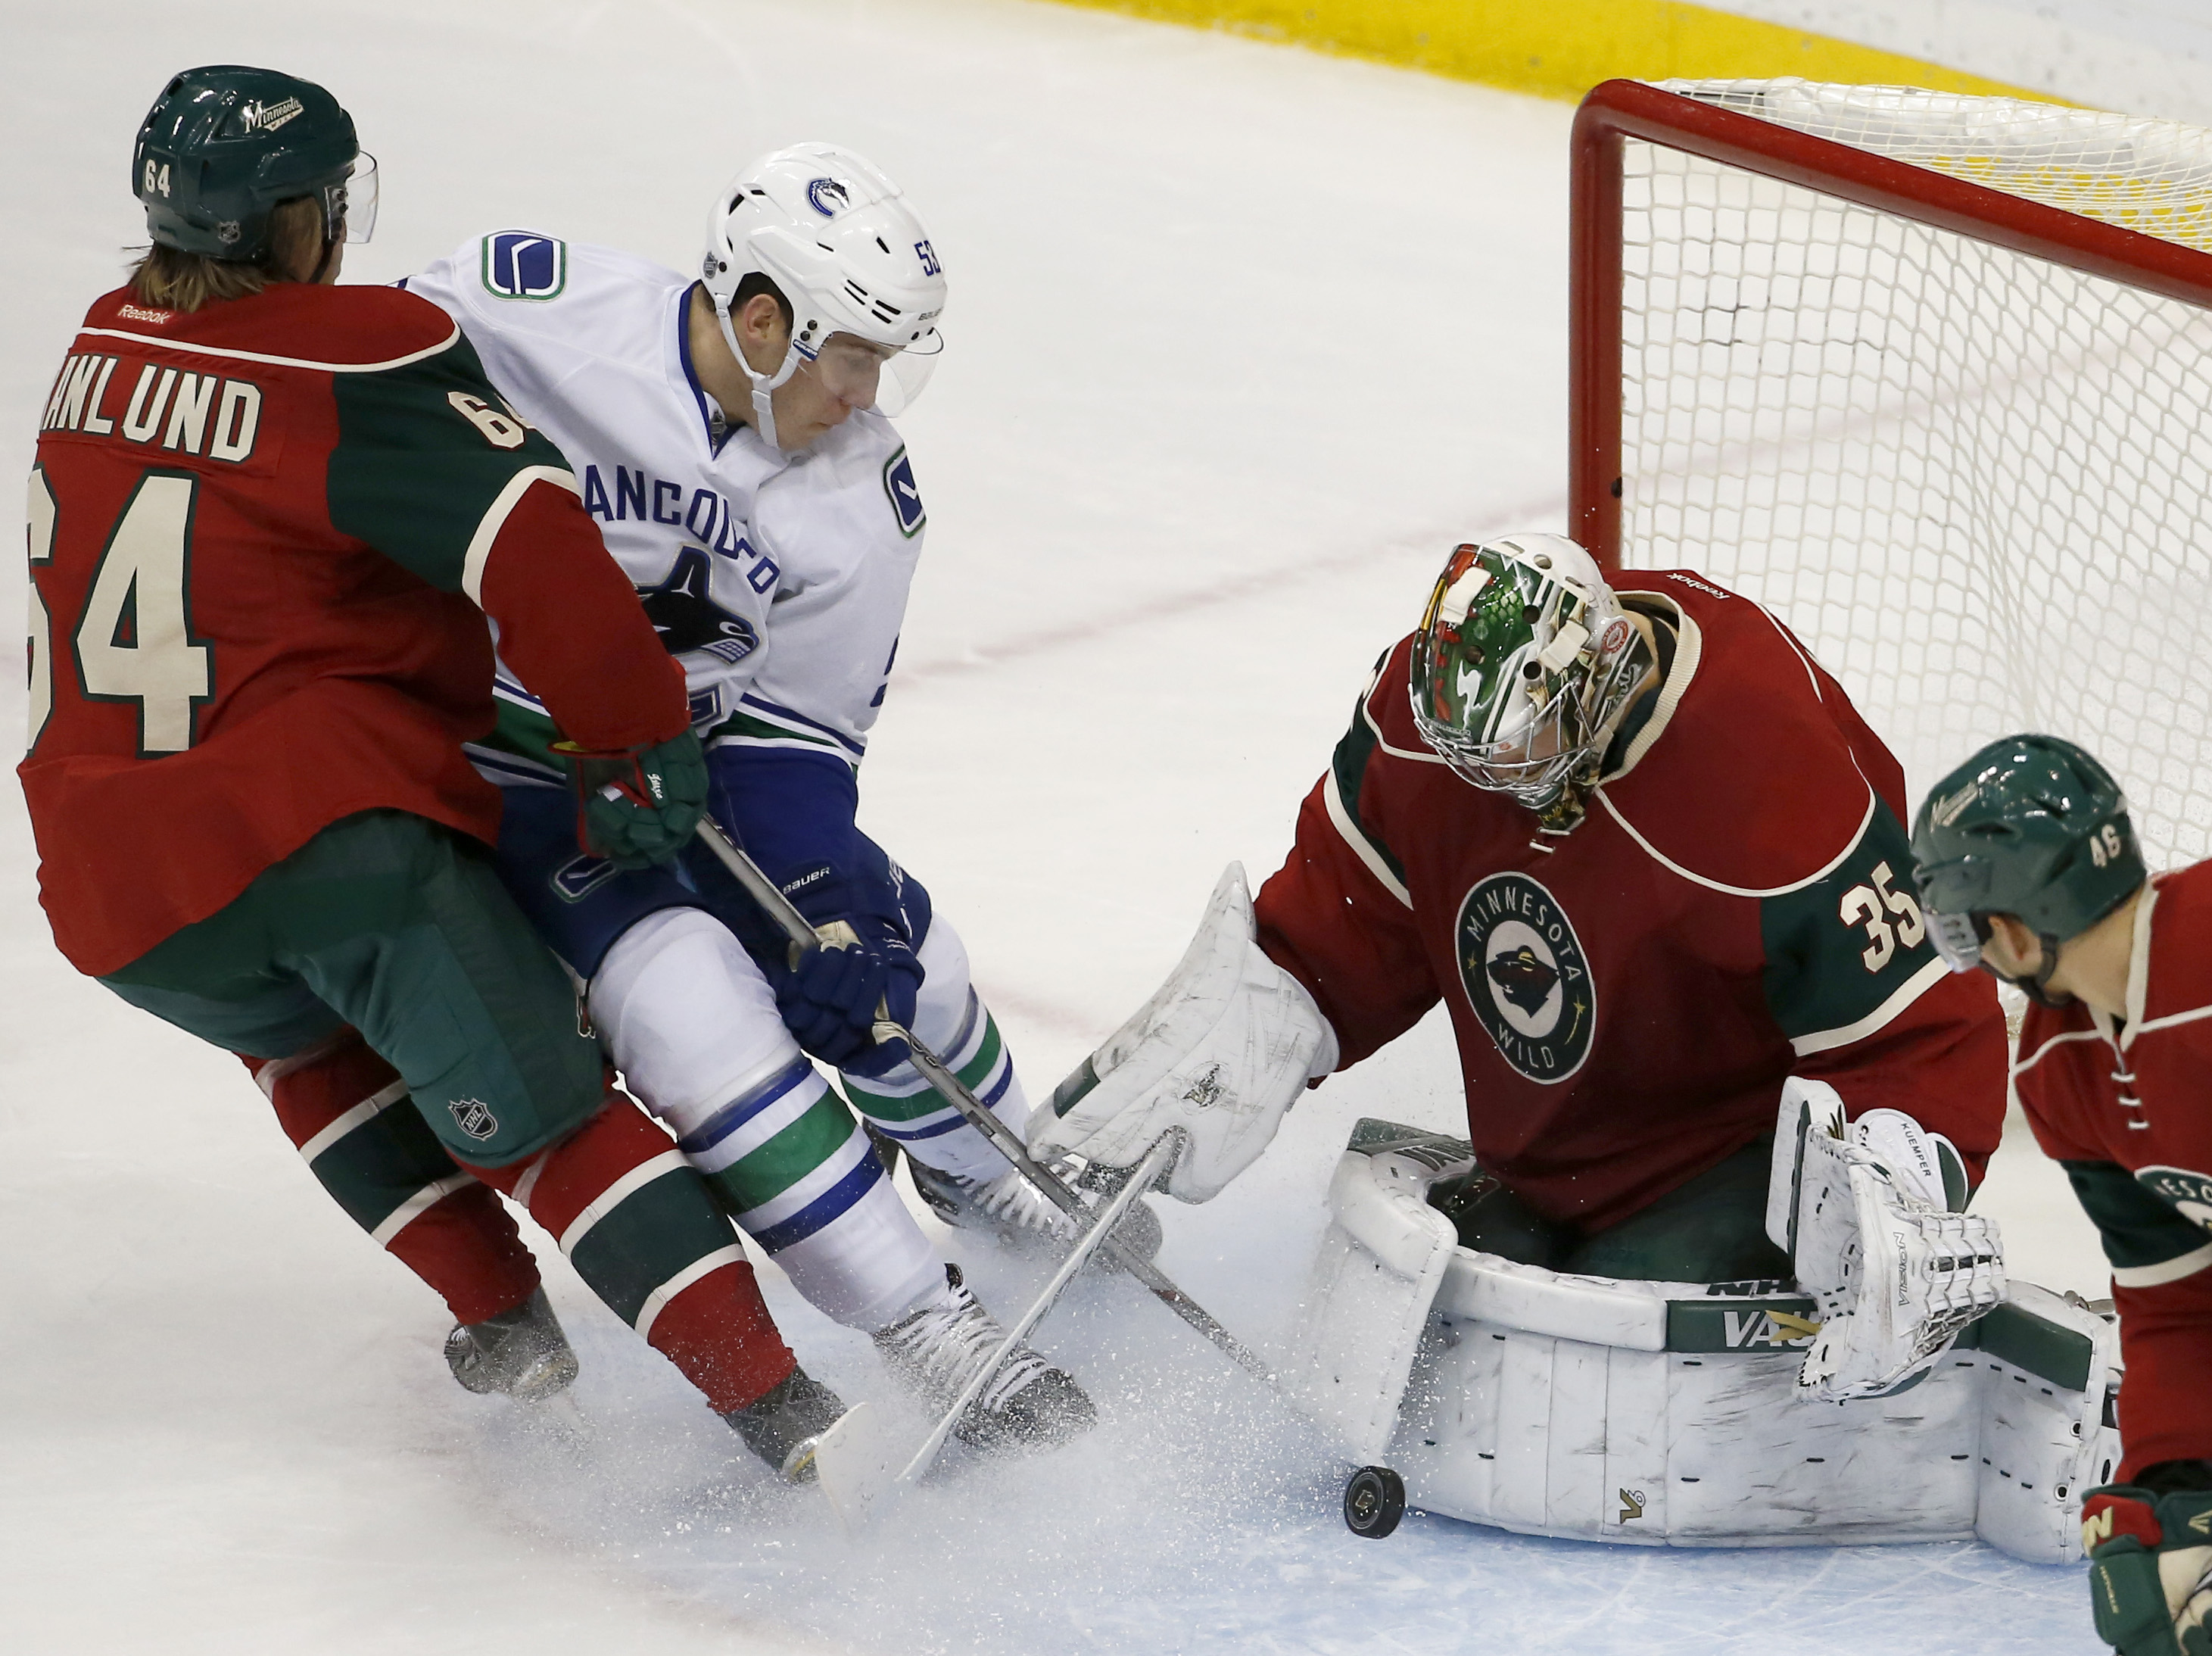 Minnesota Wild goalie Darcy Kuemper, right,  stops a shot by Vancouver Canucks center Bo Horvat, center, as Wild center Mikael Granlund (64), of Finland, tries to keep Horvat off the puck during the first period of an NHL hockey game in St. Paul, Minn., T